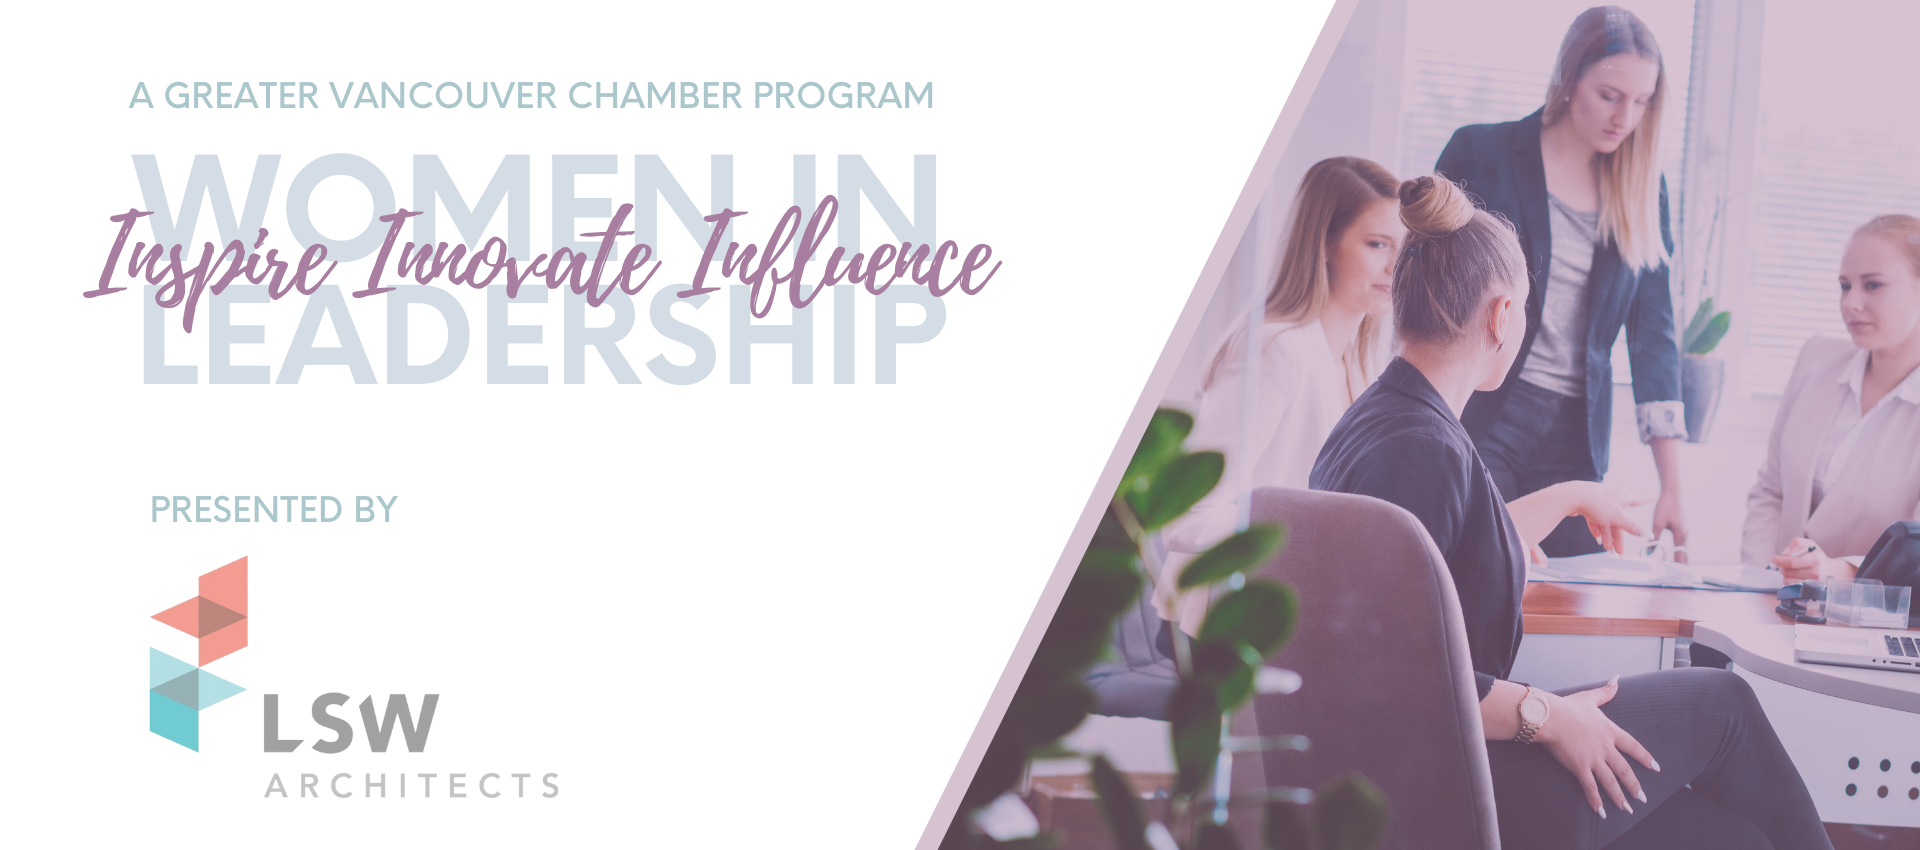 women who mean business greater vancouver chamber program inspire innovate influence presented by lsw architects